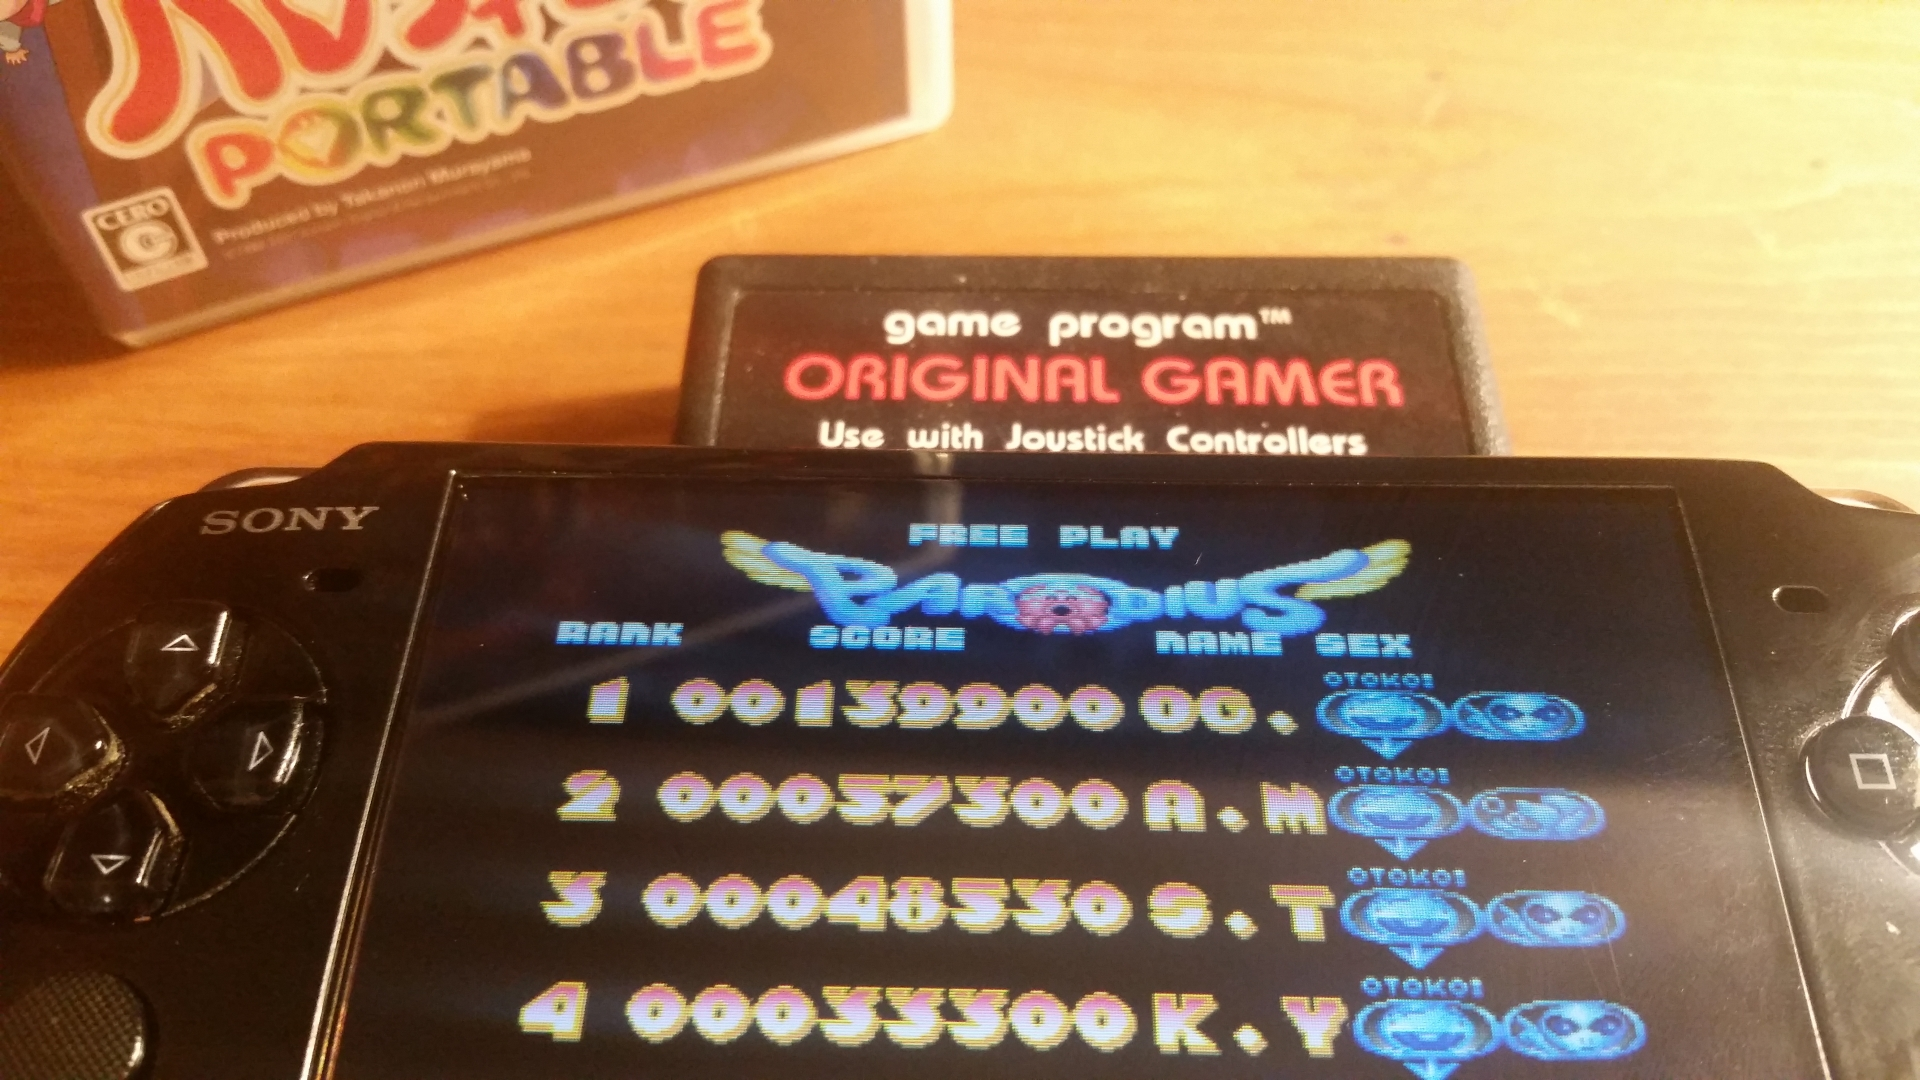 OriginalGamer: Parodius Portable: Parodius Da! (PSP) 139,900 points on 2018-01-07 04:39:43